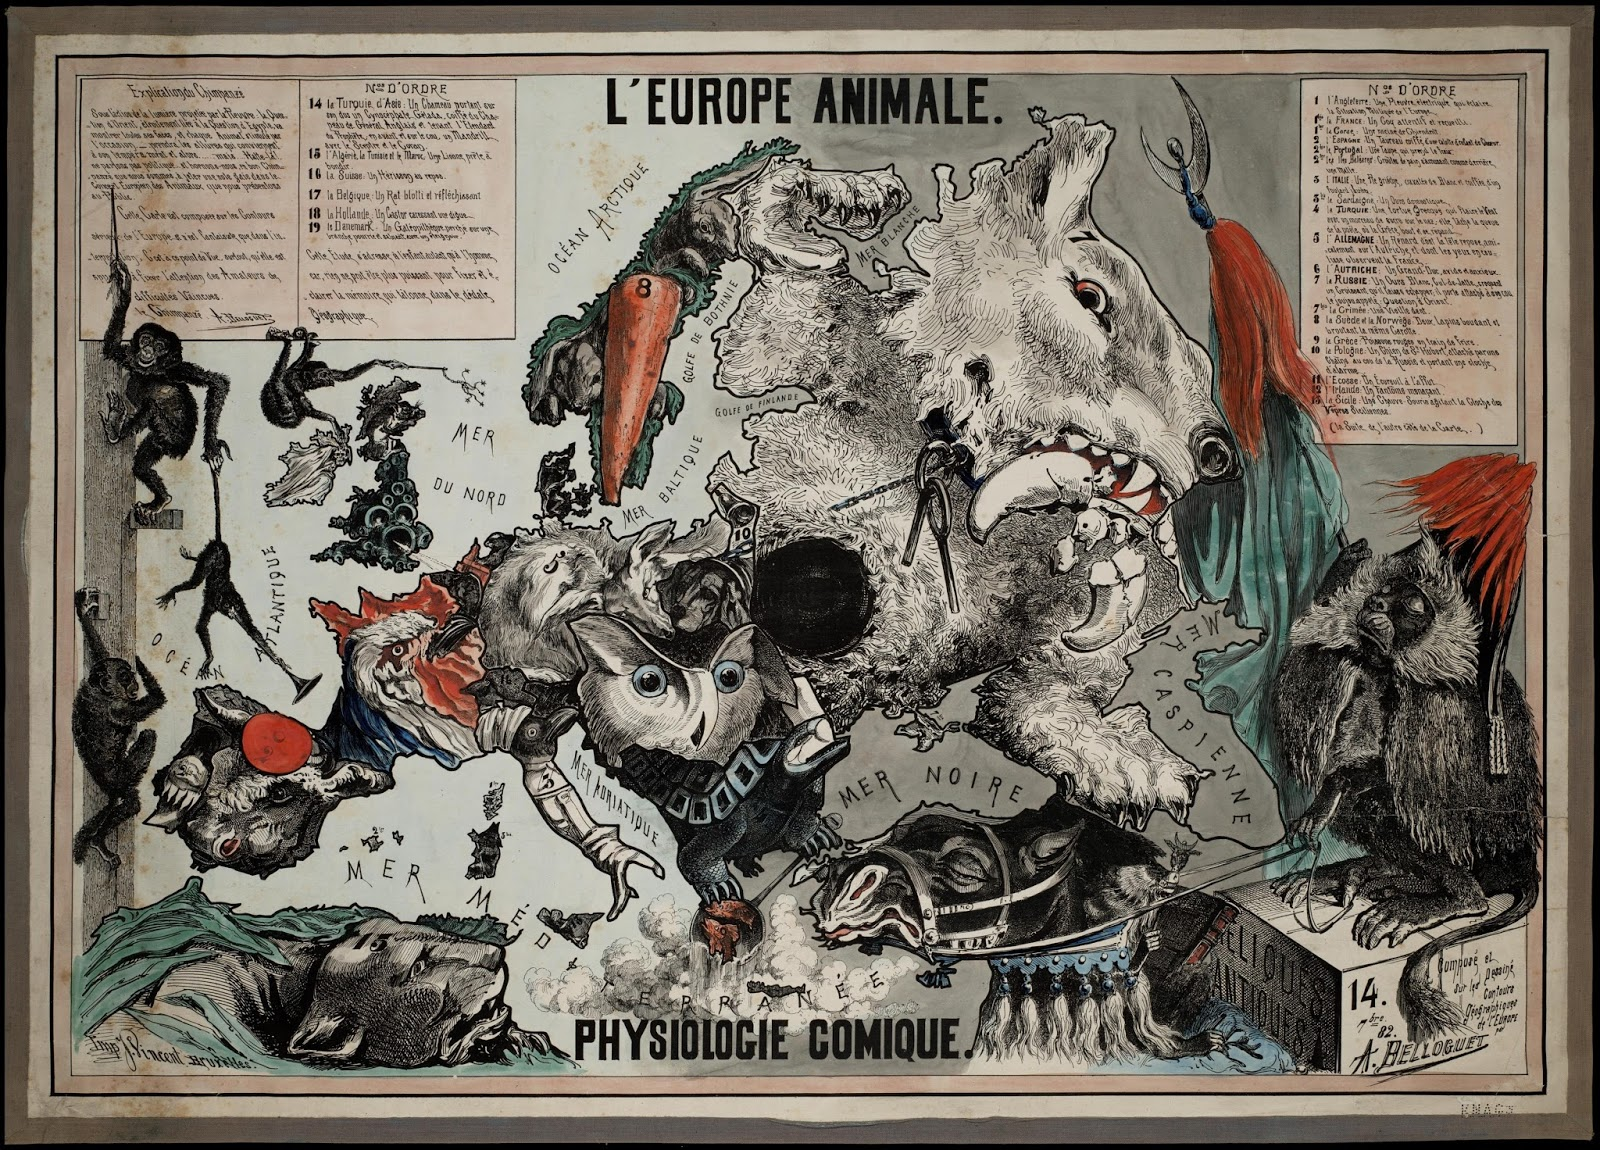 The European Animal, a satirical map made by Belloquet